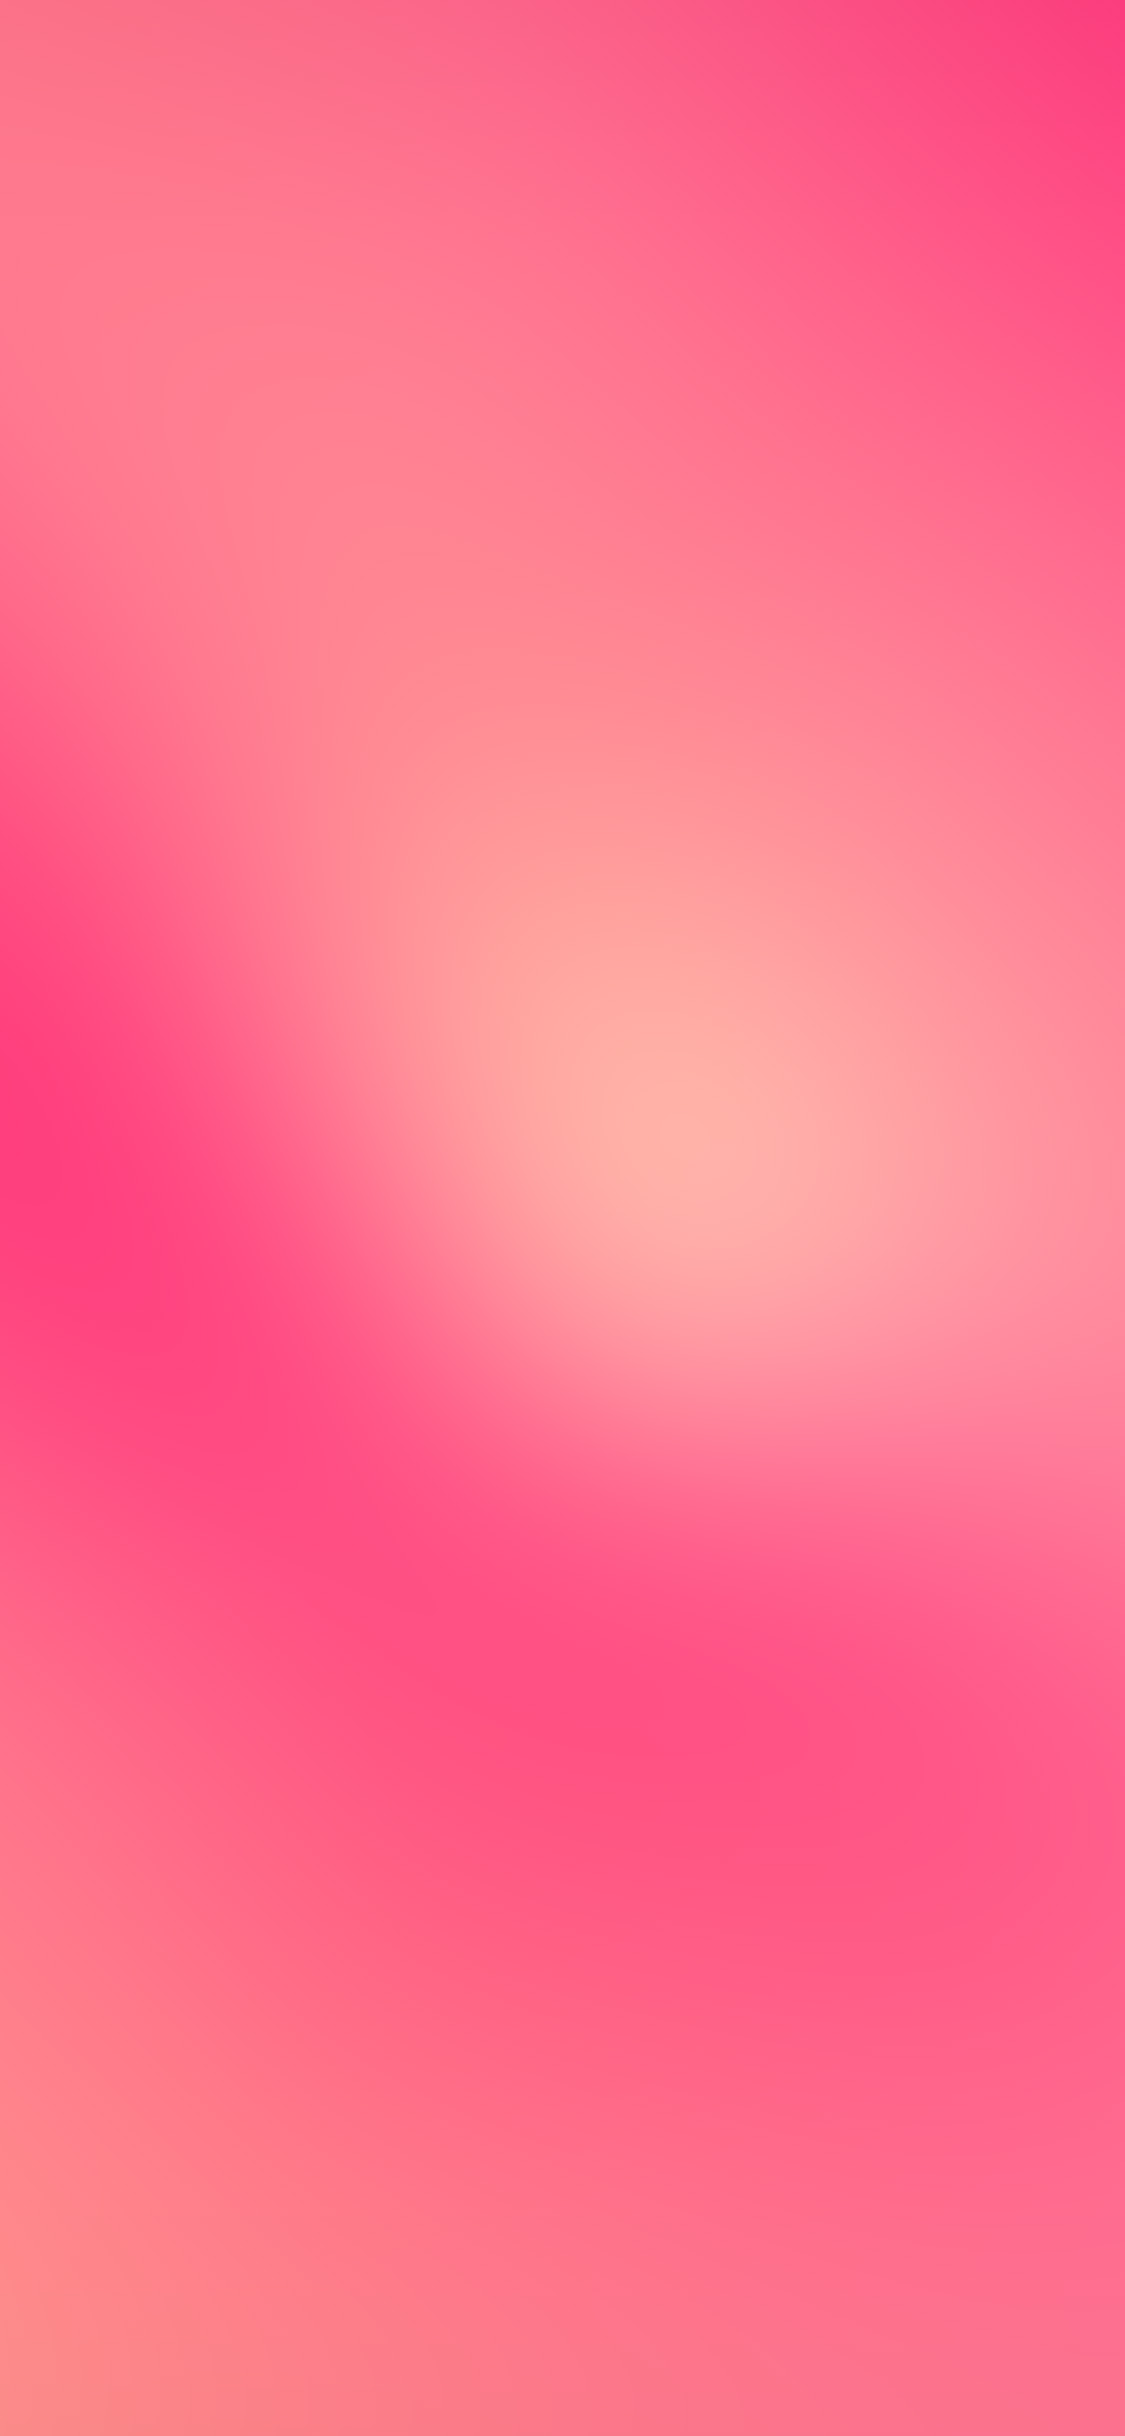 iPhonexpapers.com-Apple-iPhone-wallpaper-sm67-pink-peach-blur-gradation